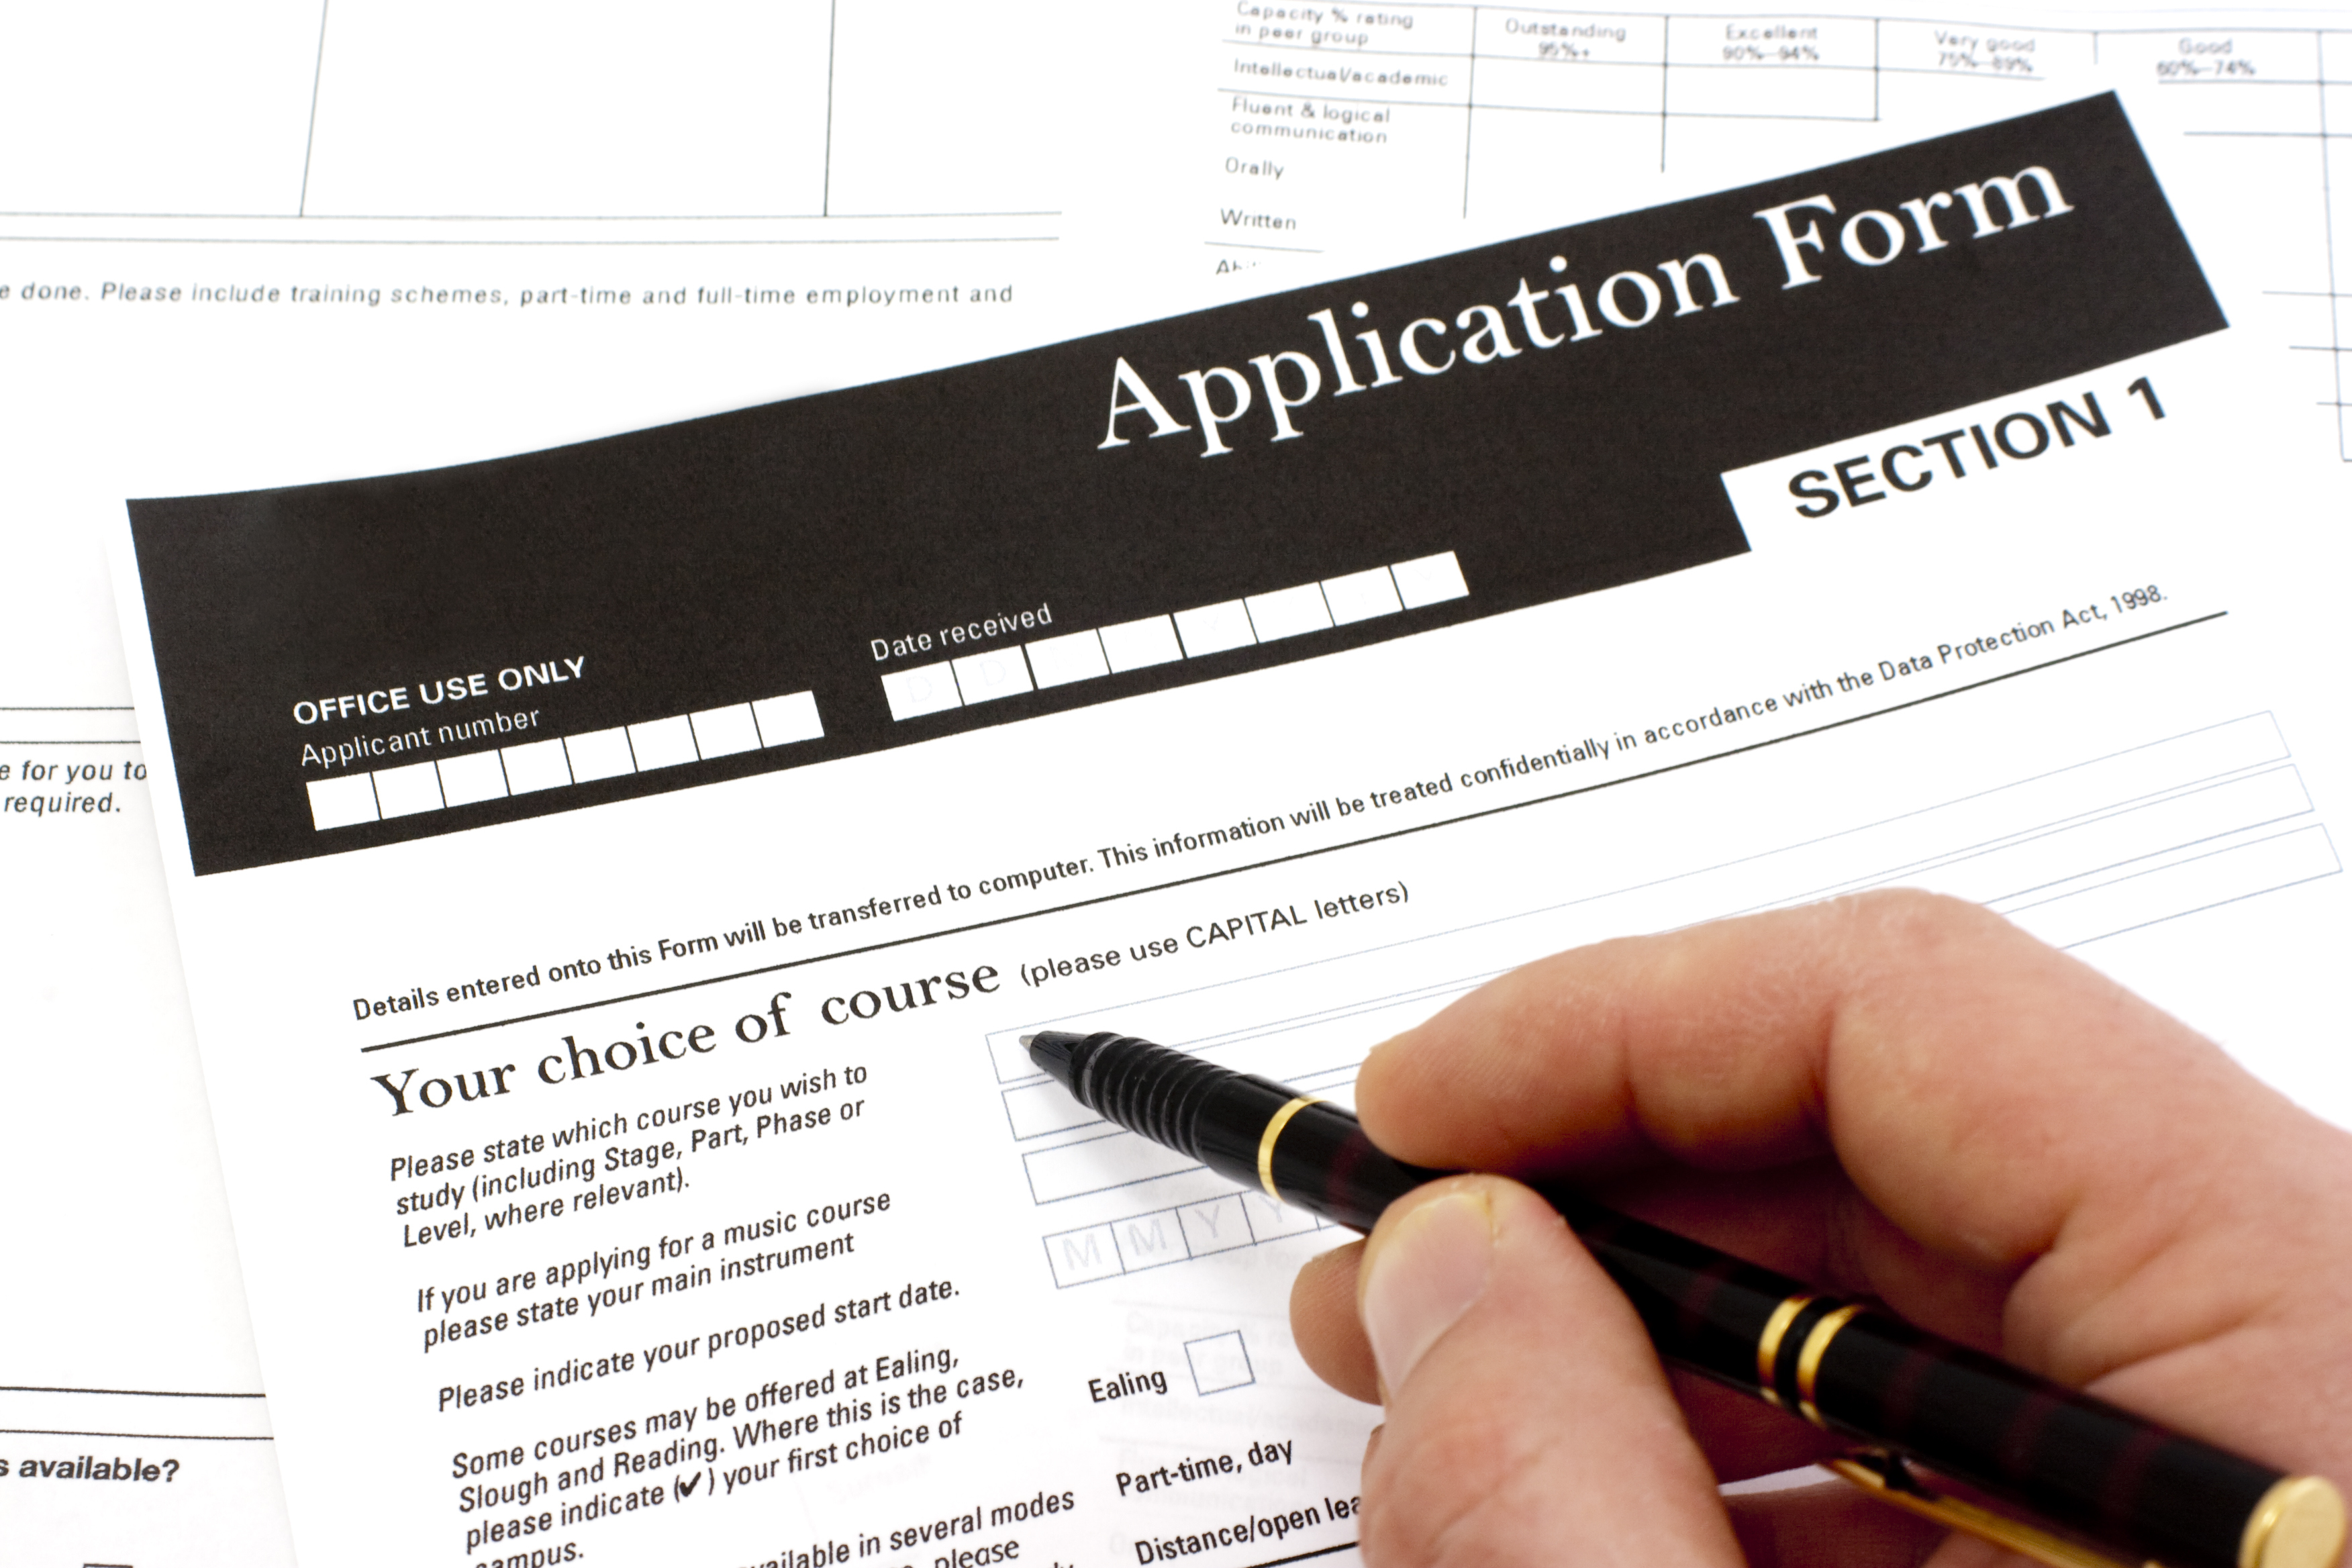 How To Fill Out A Job Application When Fired From Your Last Job